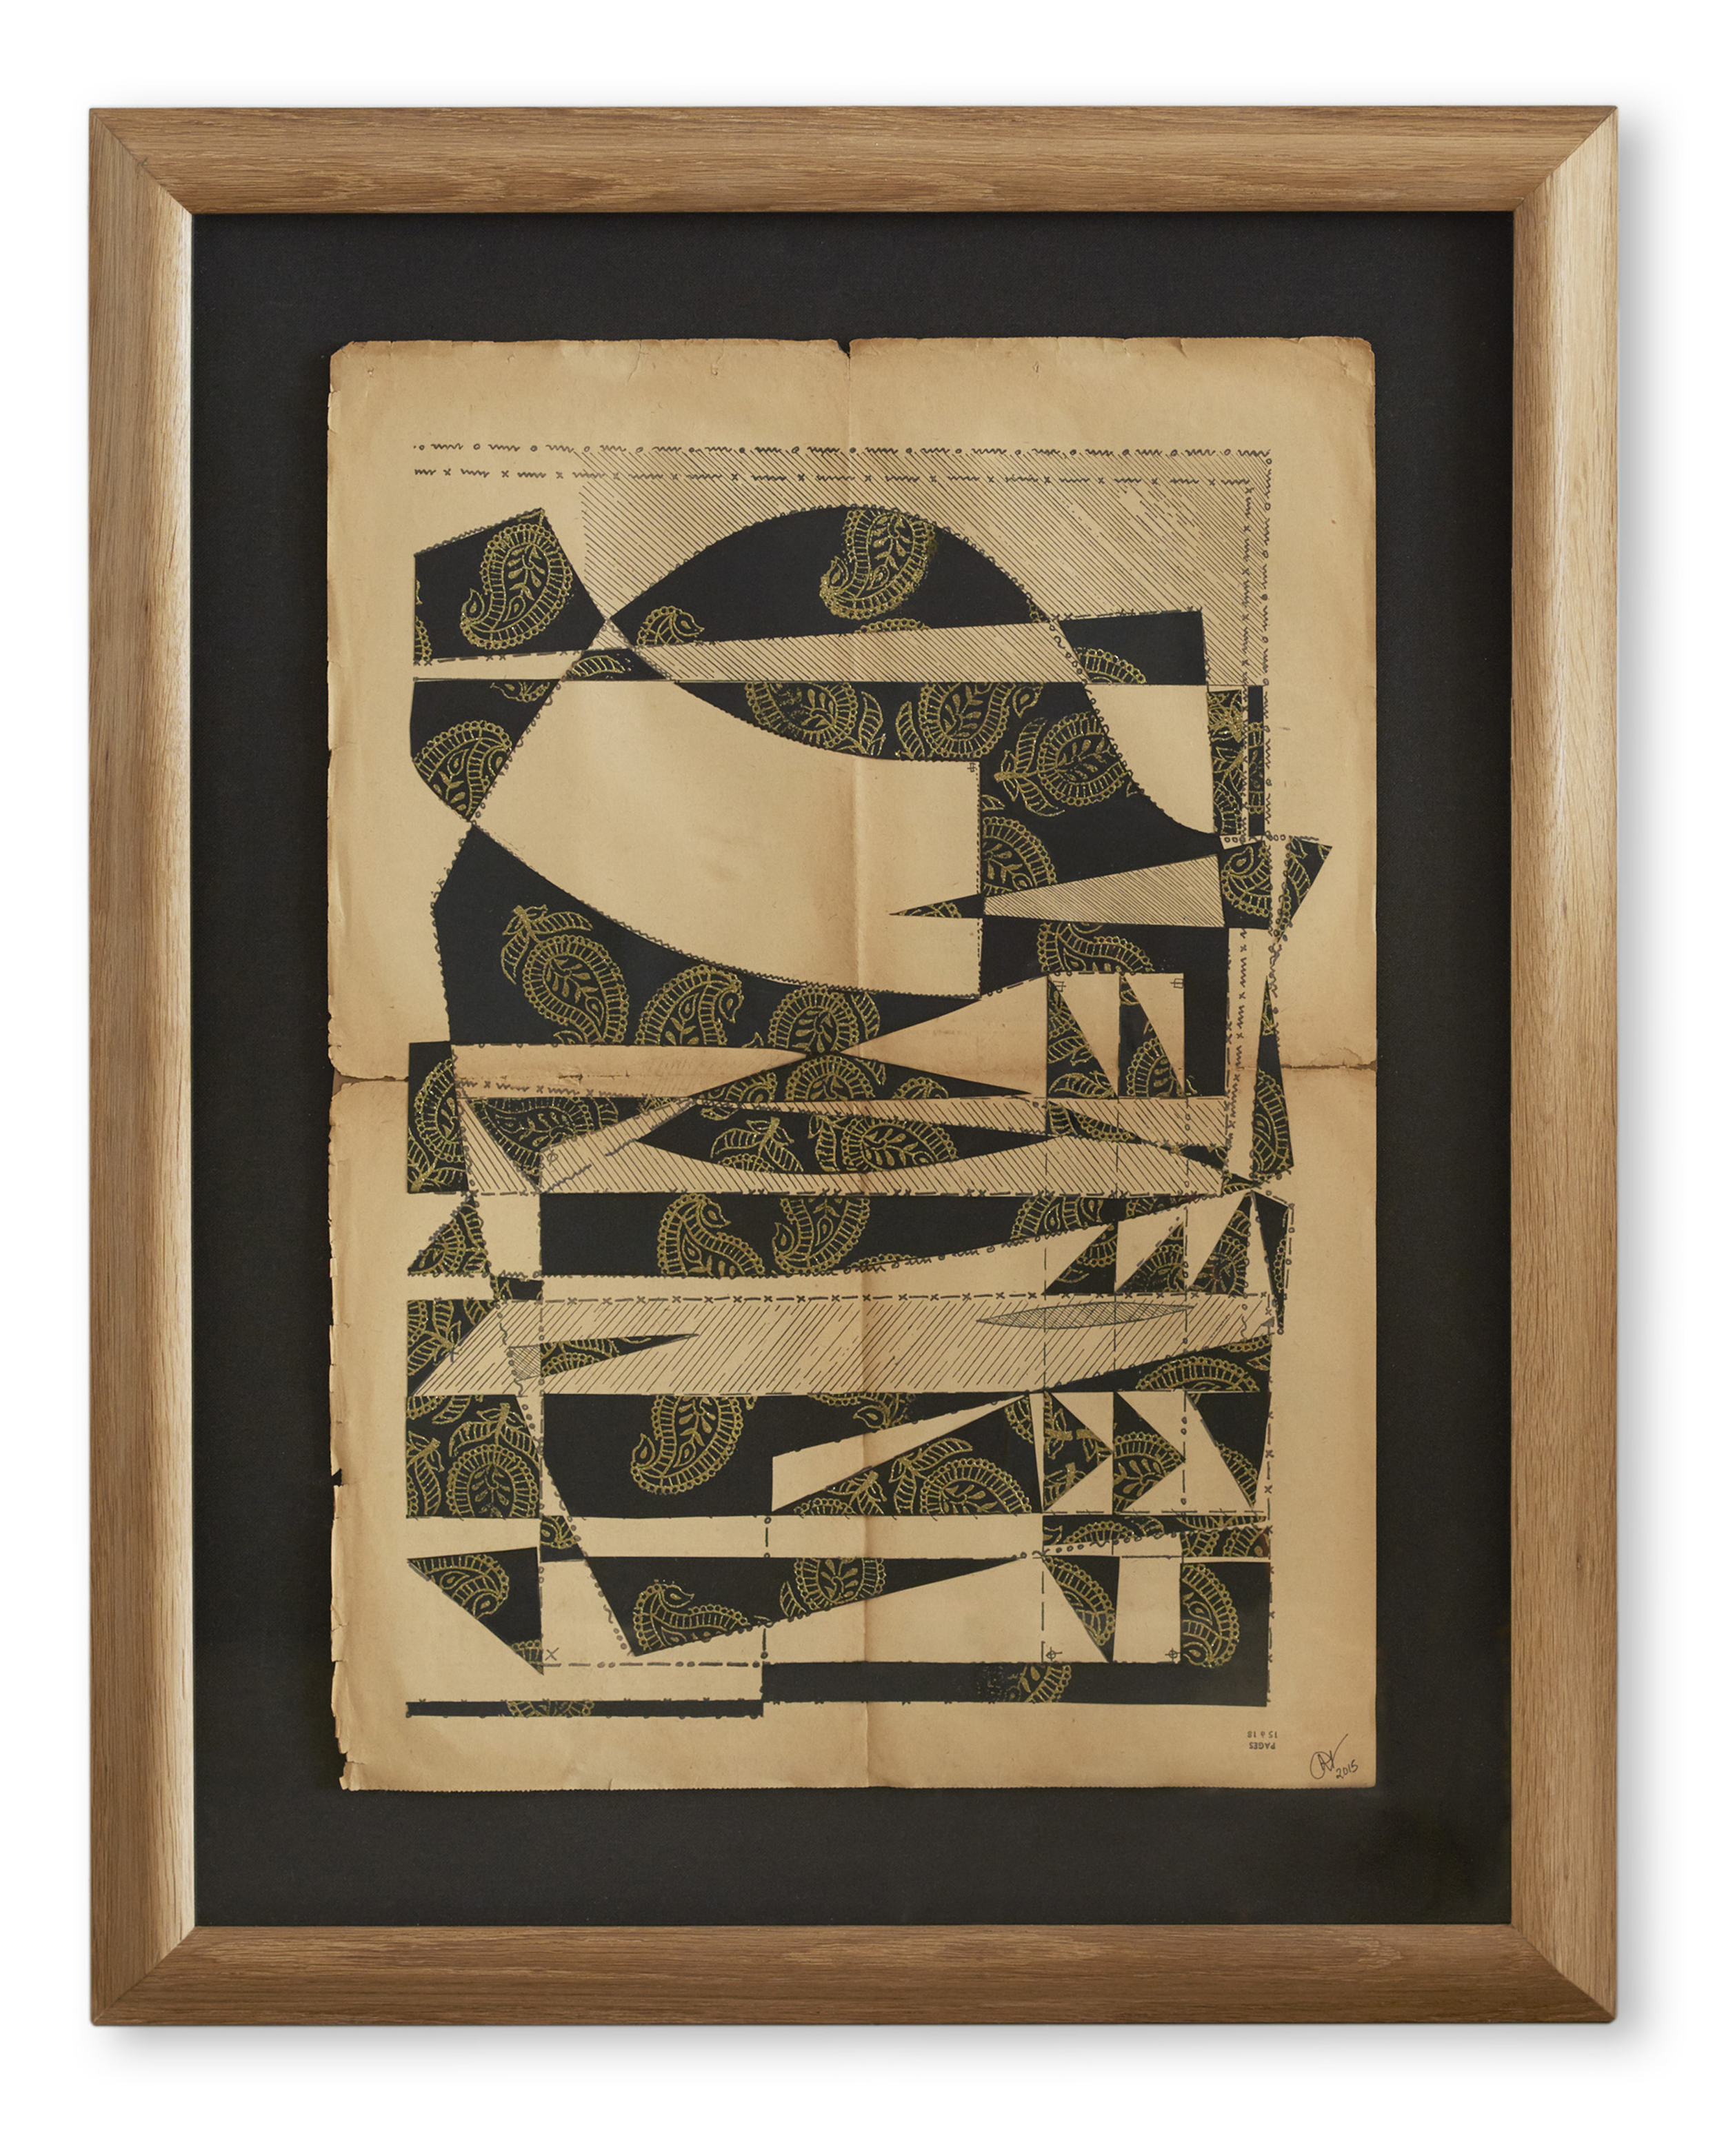 Paisley Paper Cut ,  2015  Wood cut print collage on original French sewing pattern  79 x 62.5 cm (framed) £2500